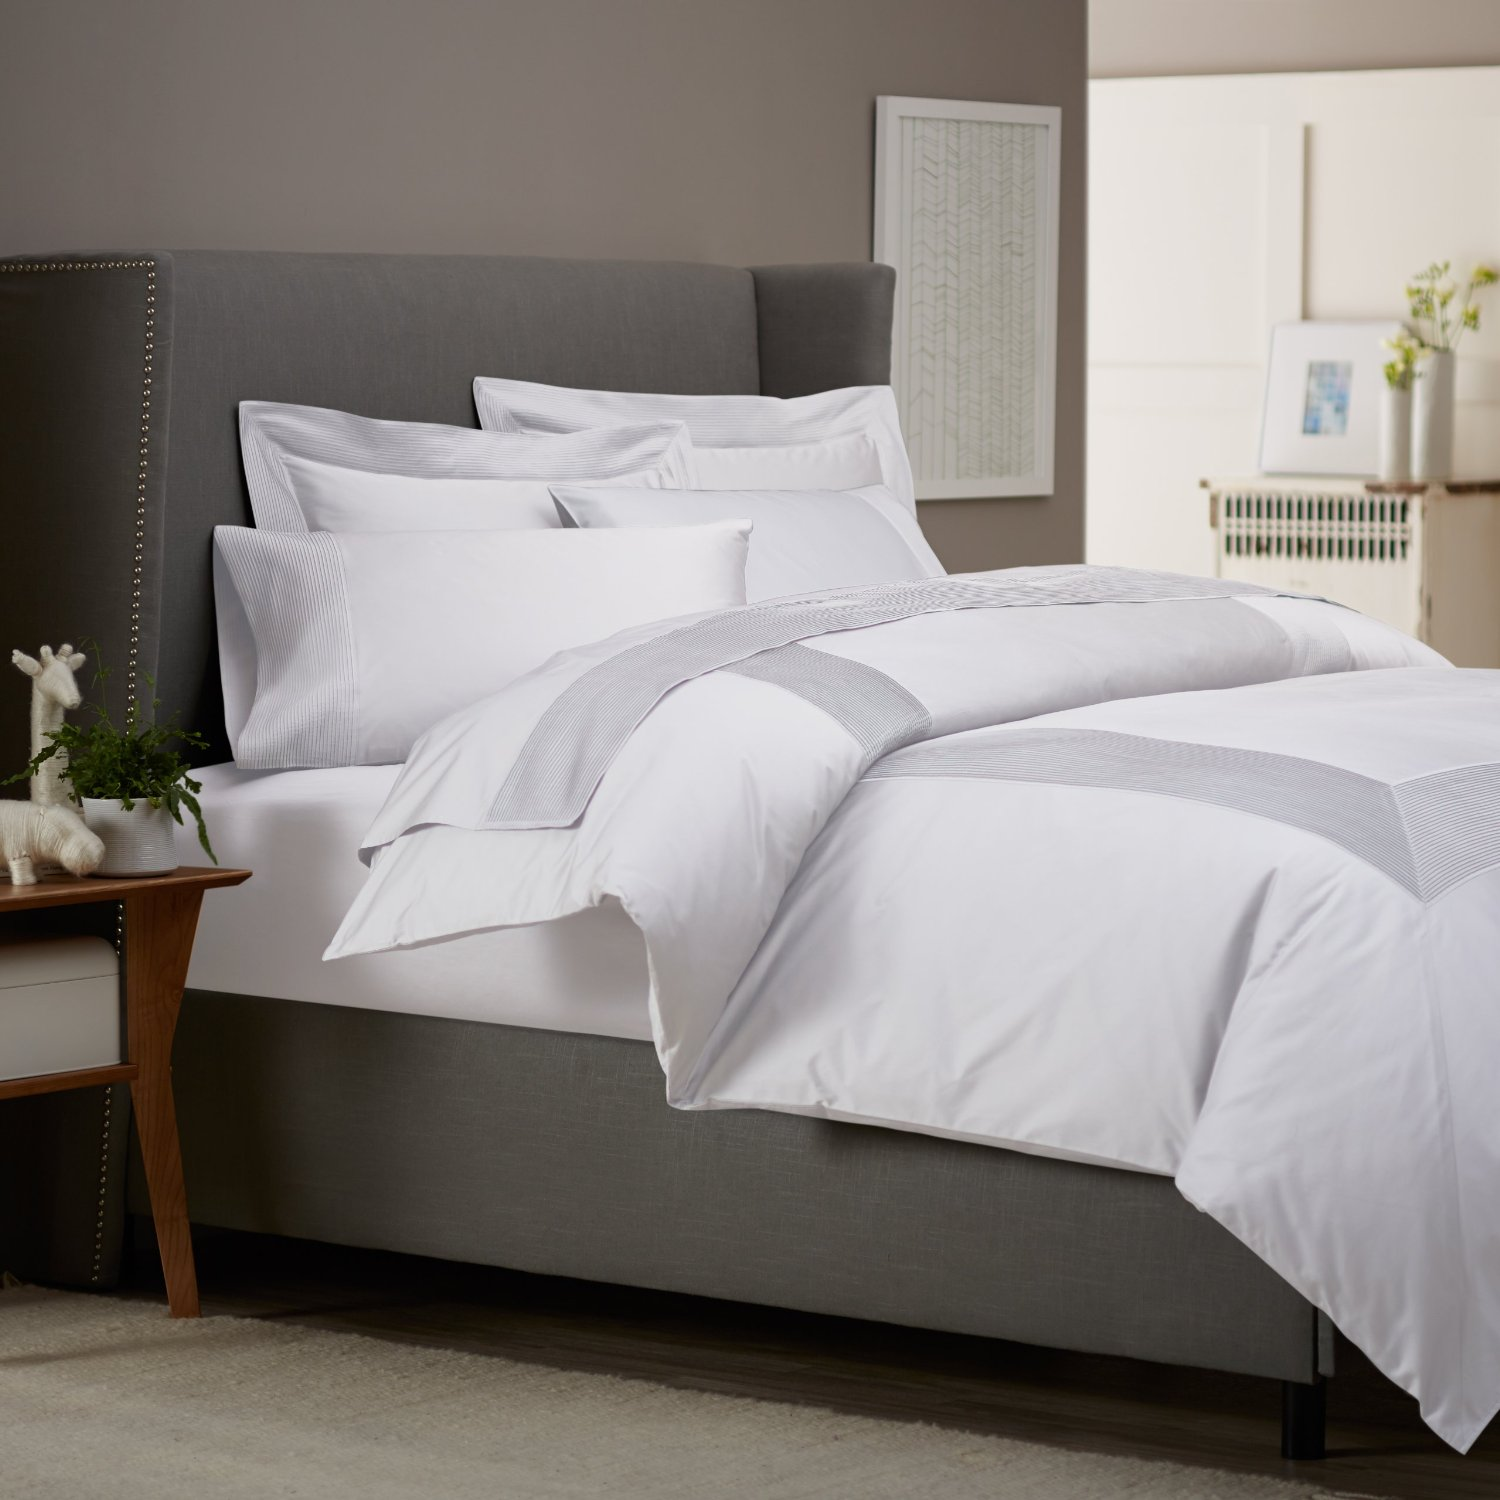 Get Alluring Visage by Displaying a White Comforter Sets  : masculine white comforter sets king arranged on a divan bed with gray fabric and nailhead with wooden night table from homesfeed.com size 1500 x 1500 jpeg 180kB